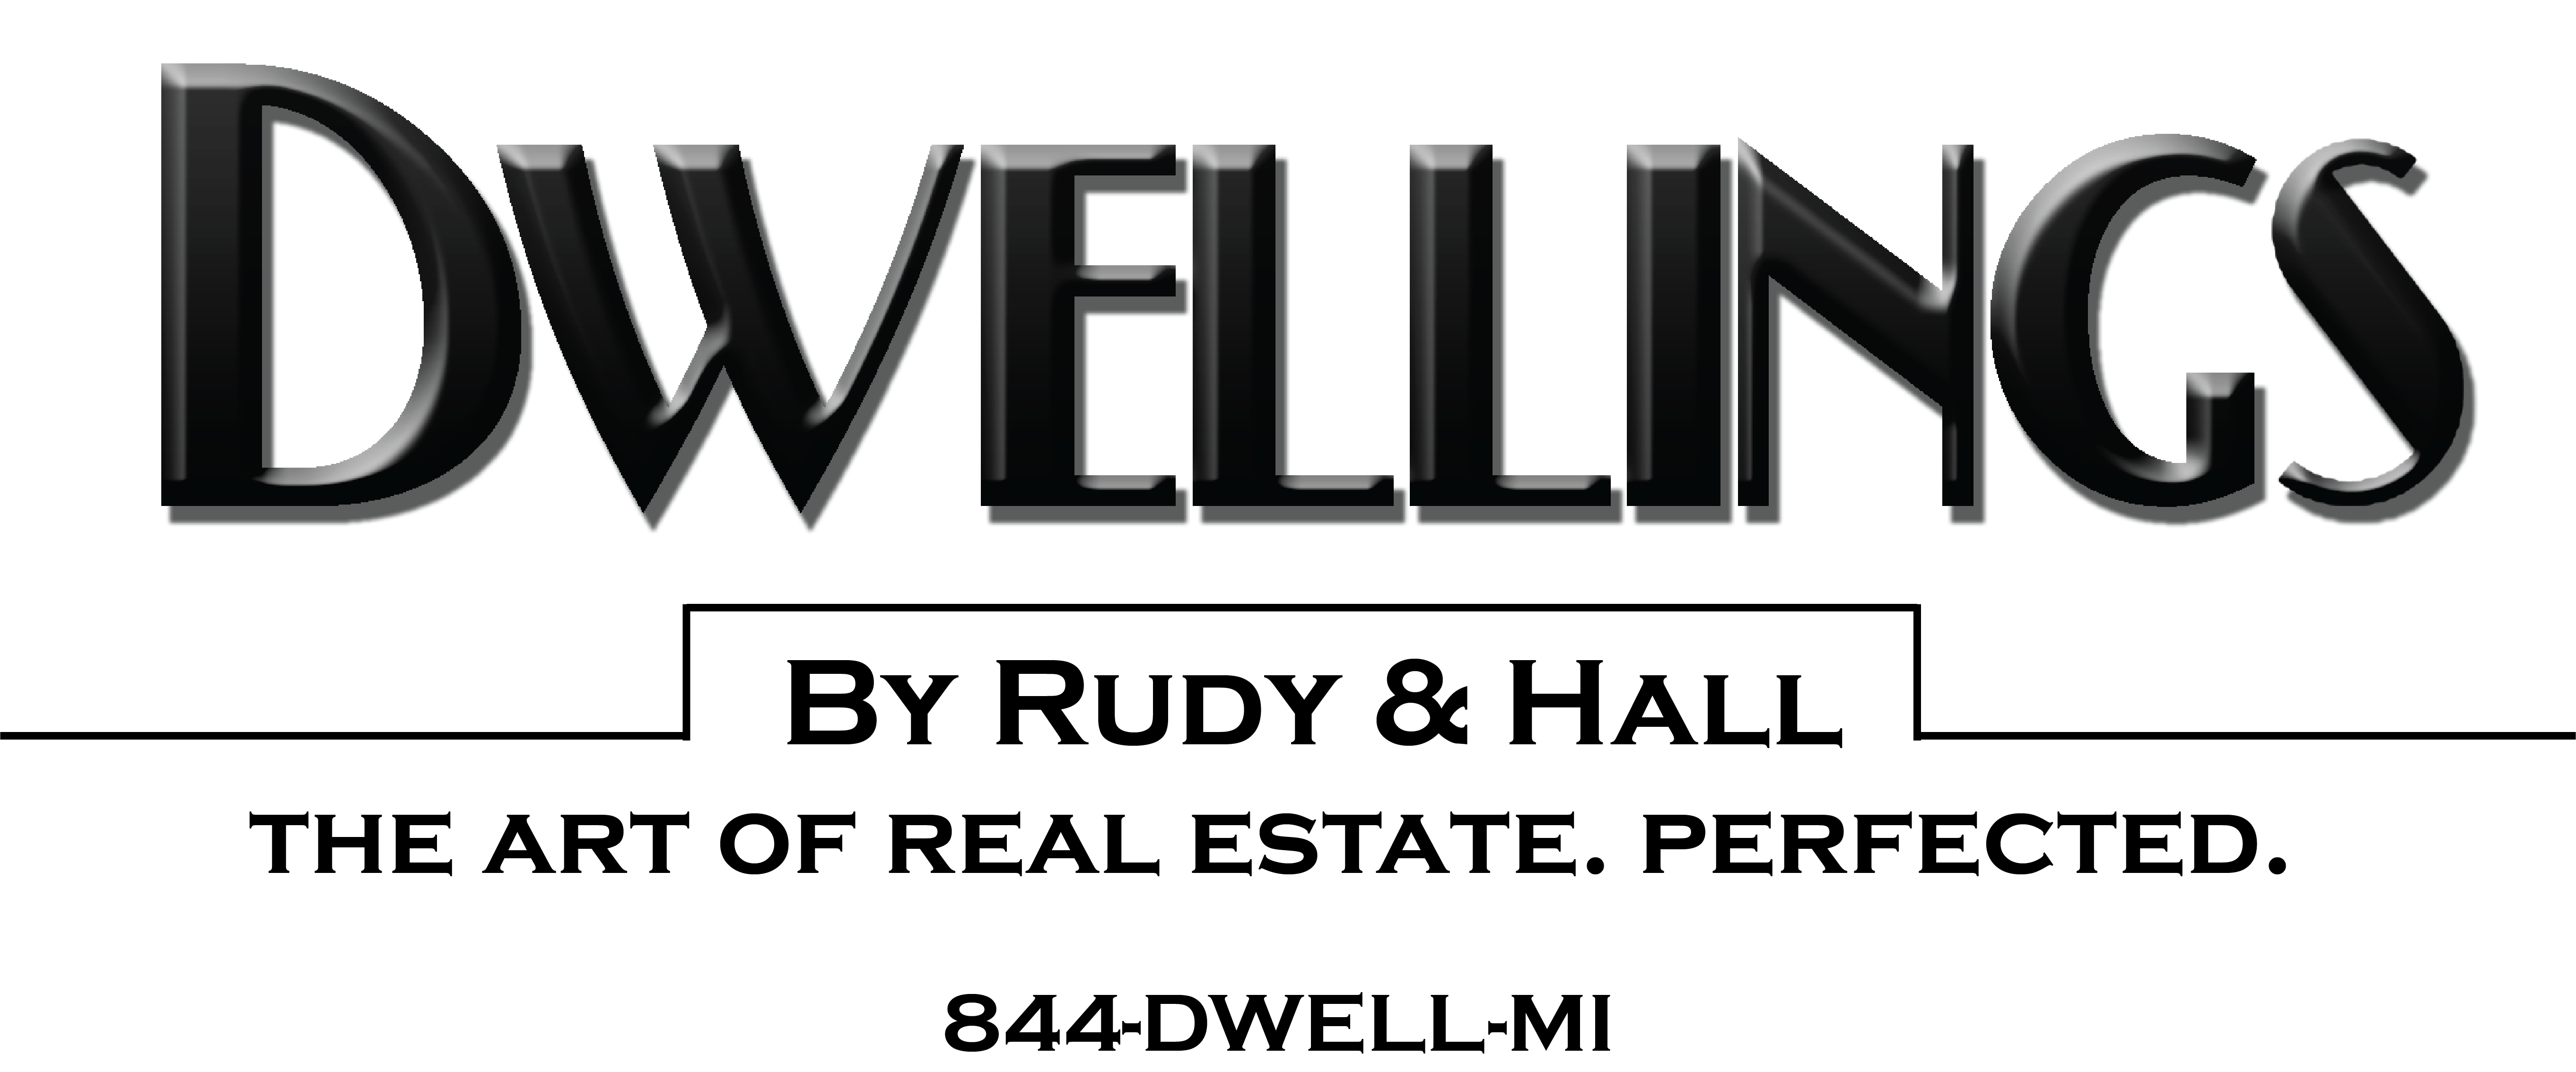 Dwellings By Rudy & Hall